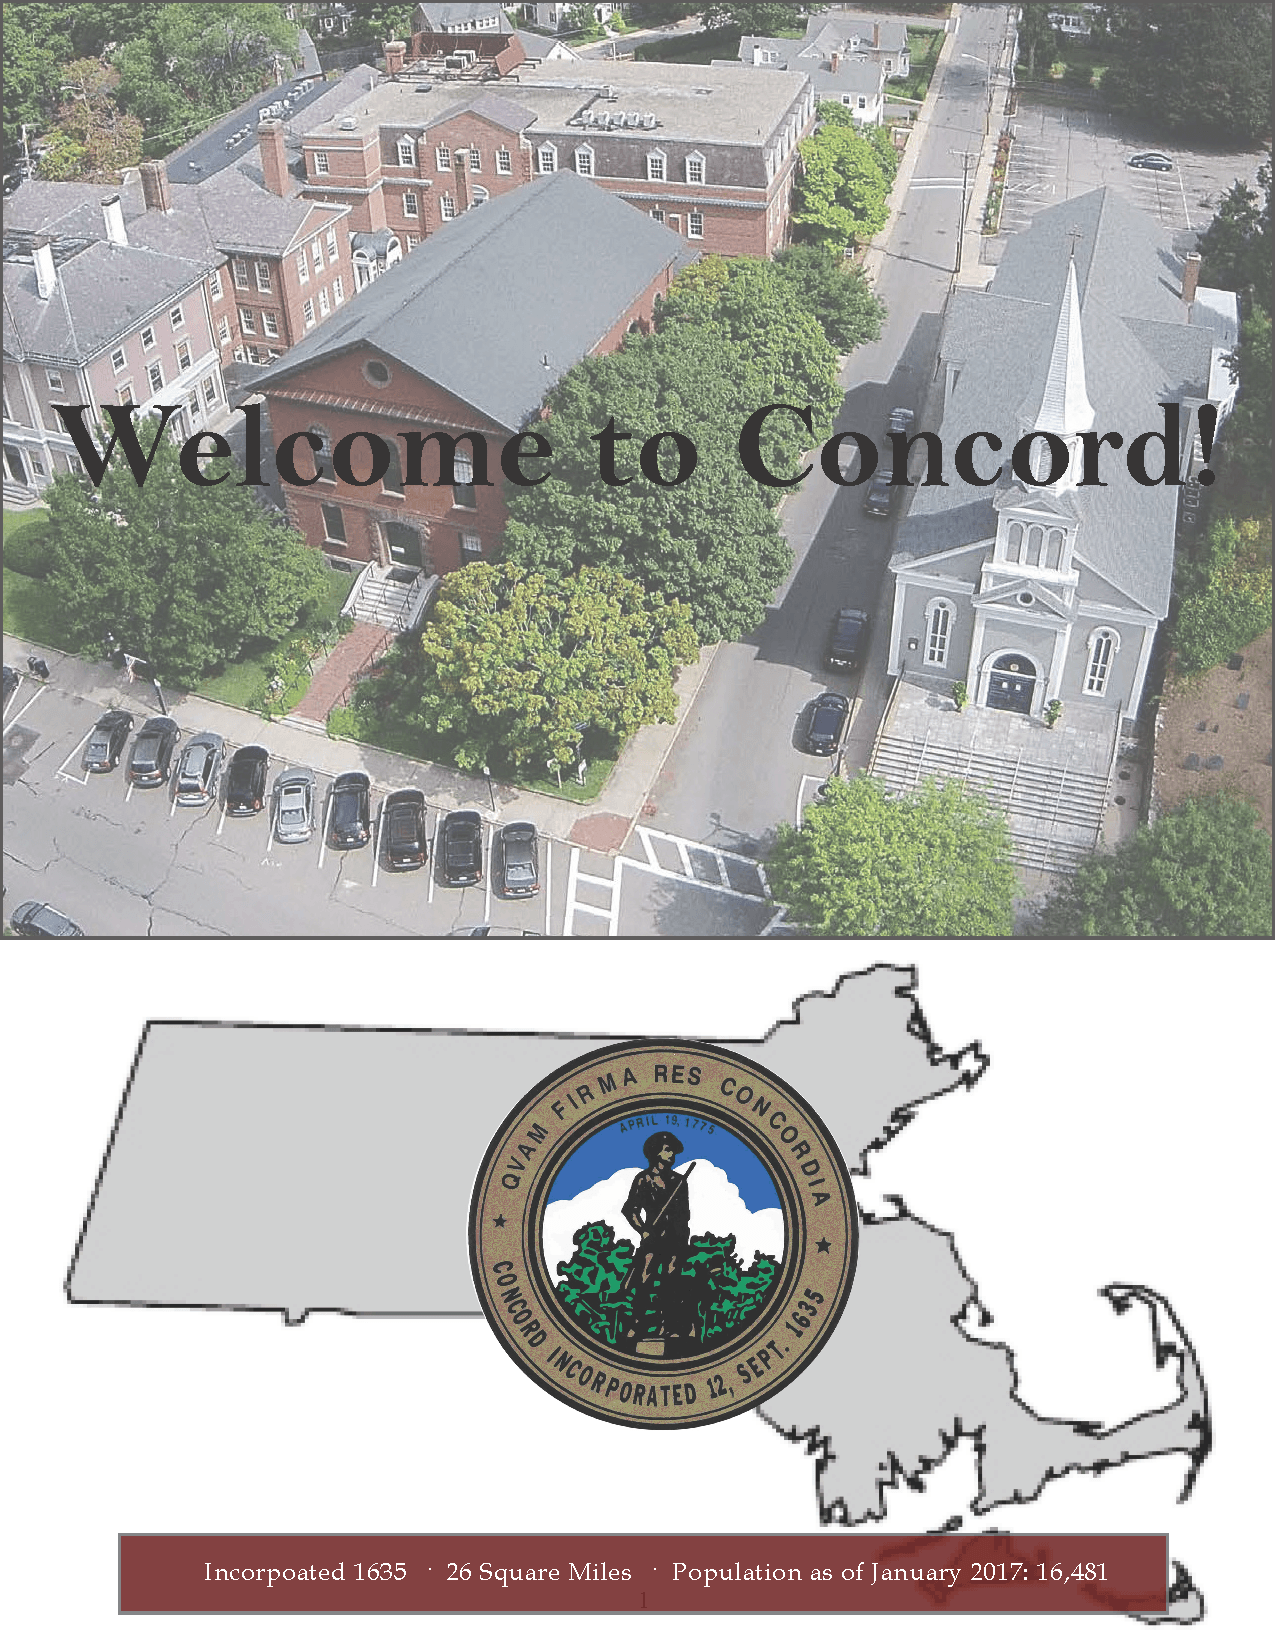 welcome to concord, new resident packet front page